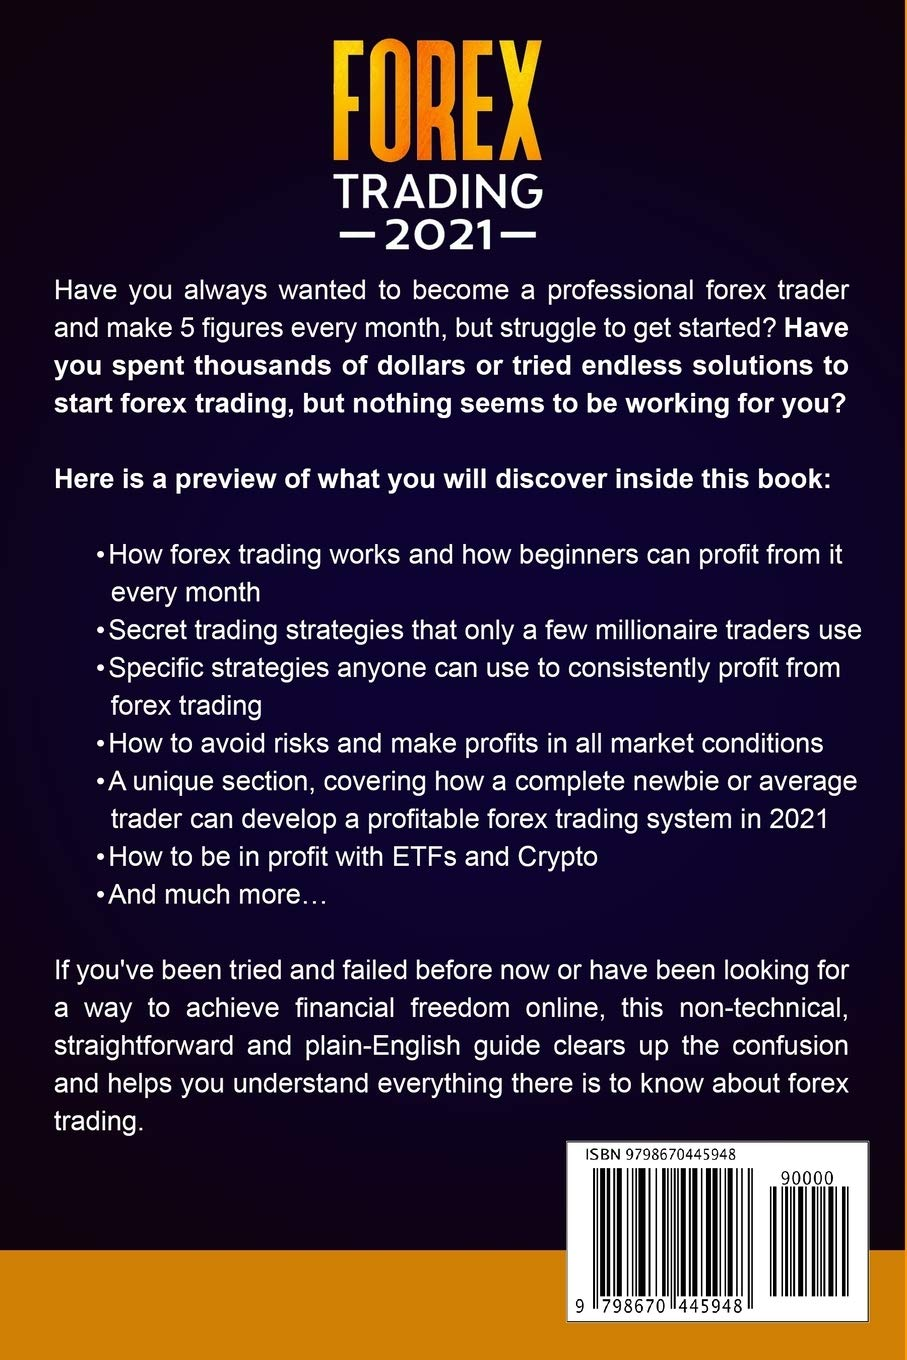 Forex trader wanted 2021 merrion investment managers aum patcharapa